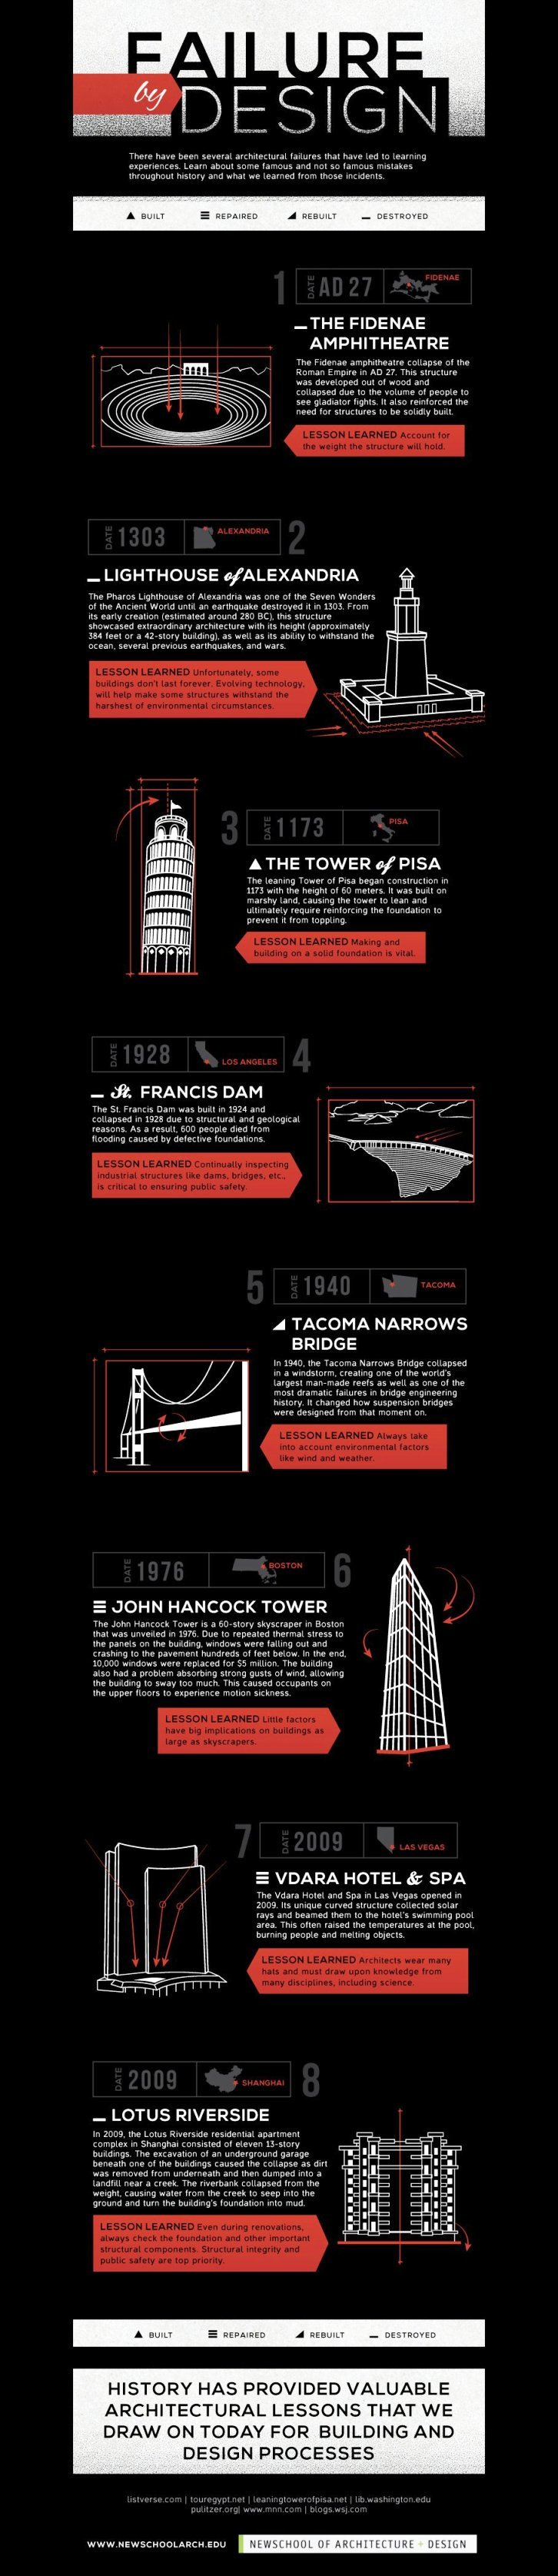 failure by design #infographic